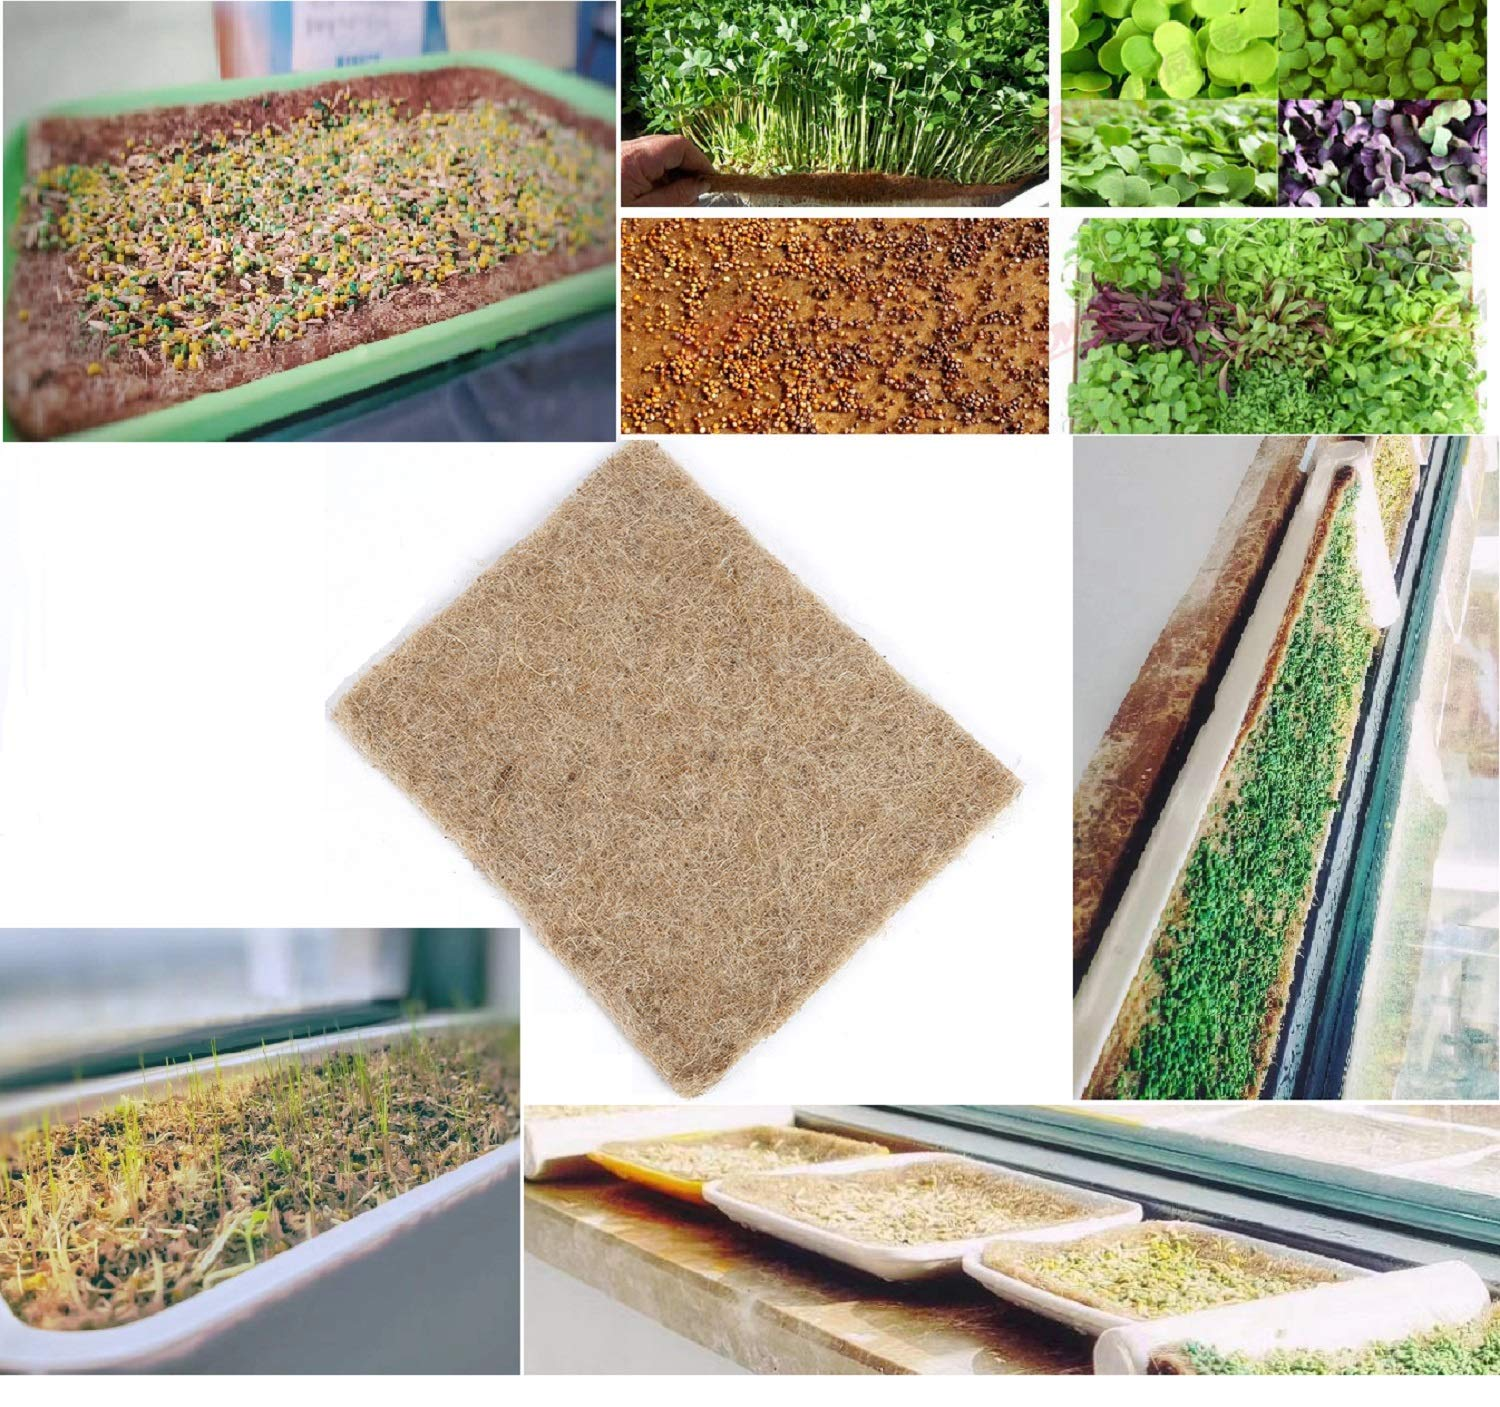 24 Hydroponic Grow Pads - Hemp Grow Mat - Perfect for Microgreens, Wheatgrass, Sprouts - (Fits Standard 10'' X 20'' Germination Tray) - Environmentally Friendly, Fully Biodegradable (24) by Amazing-us